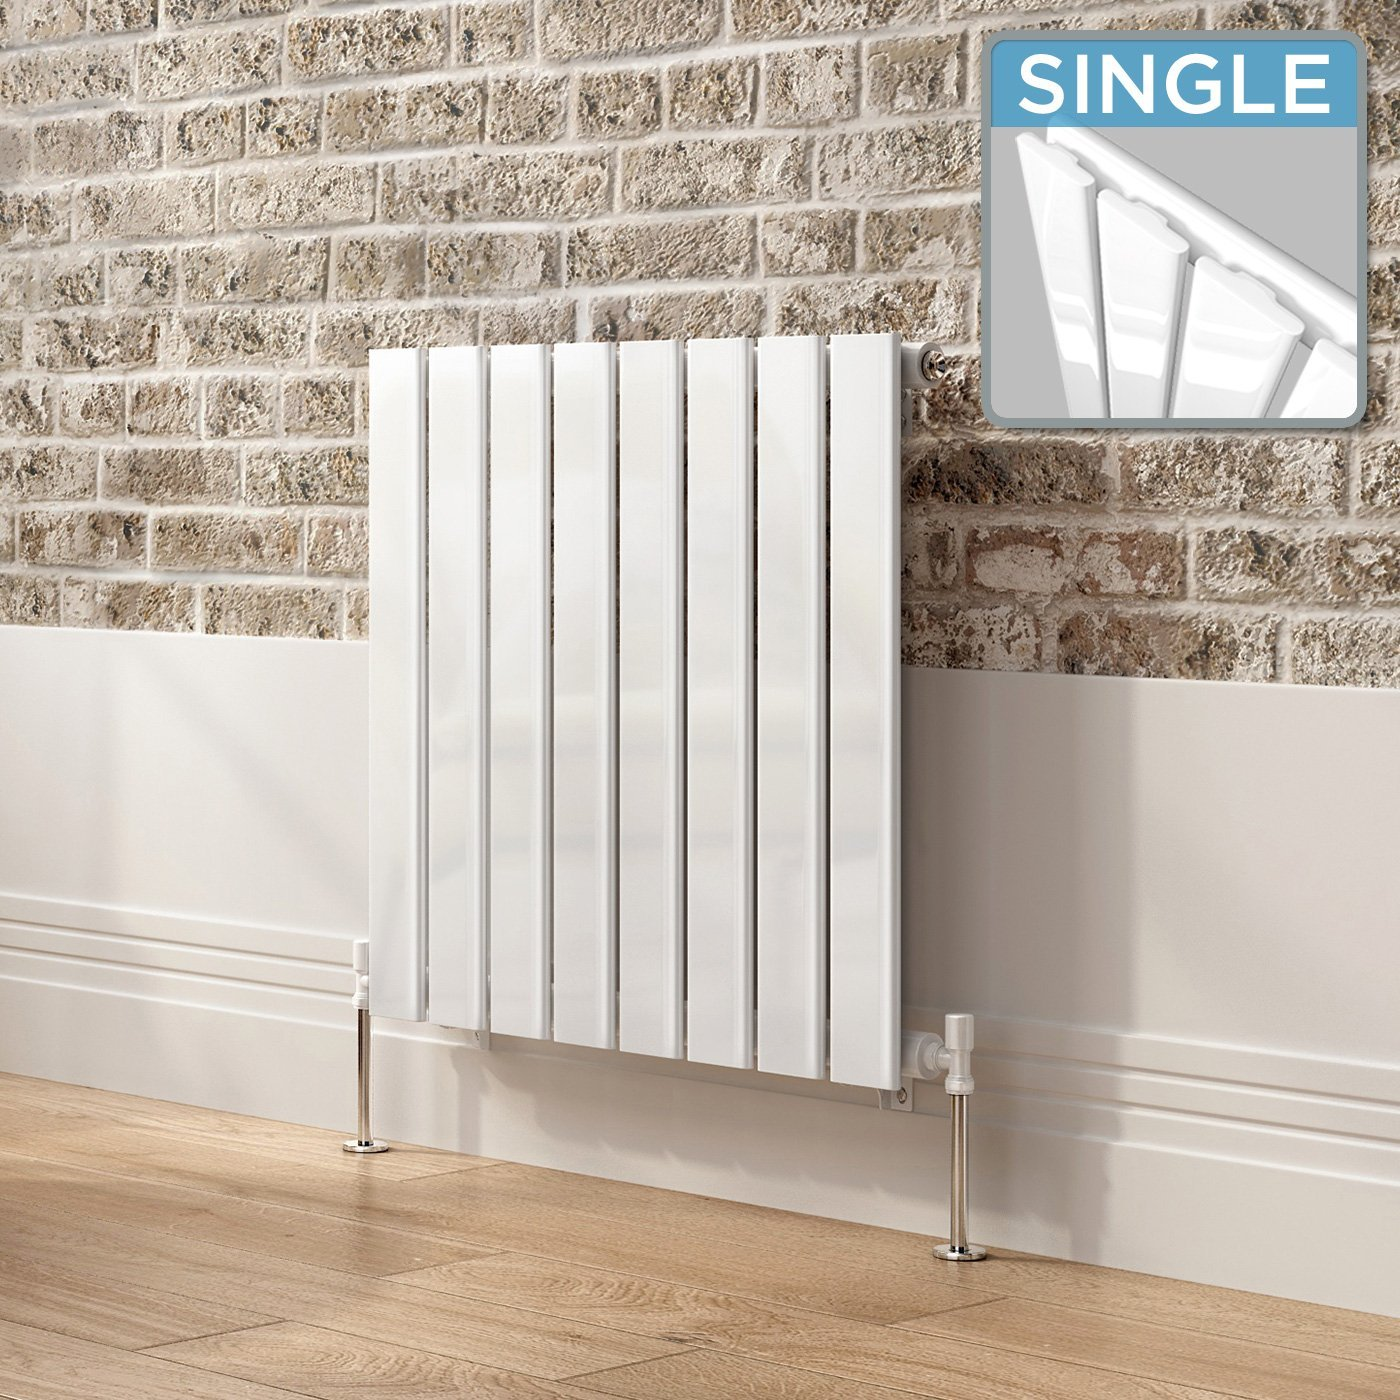 600 x 600 mm White Column Designer Radiator Horizontal Single Flat Panel